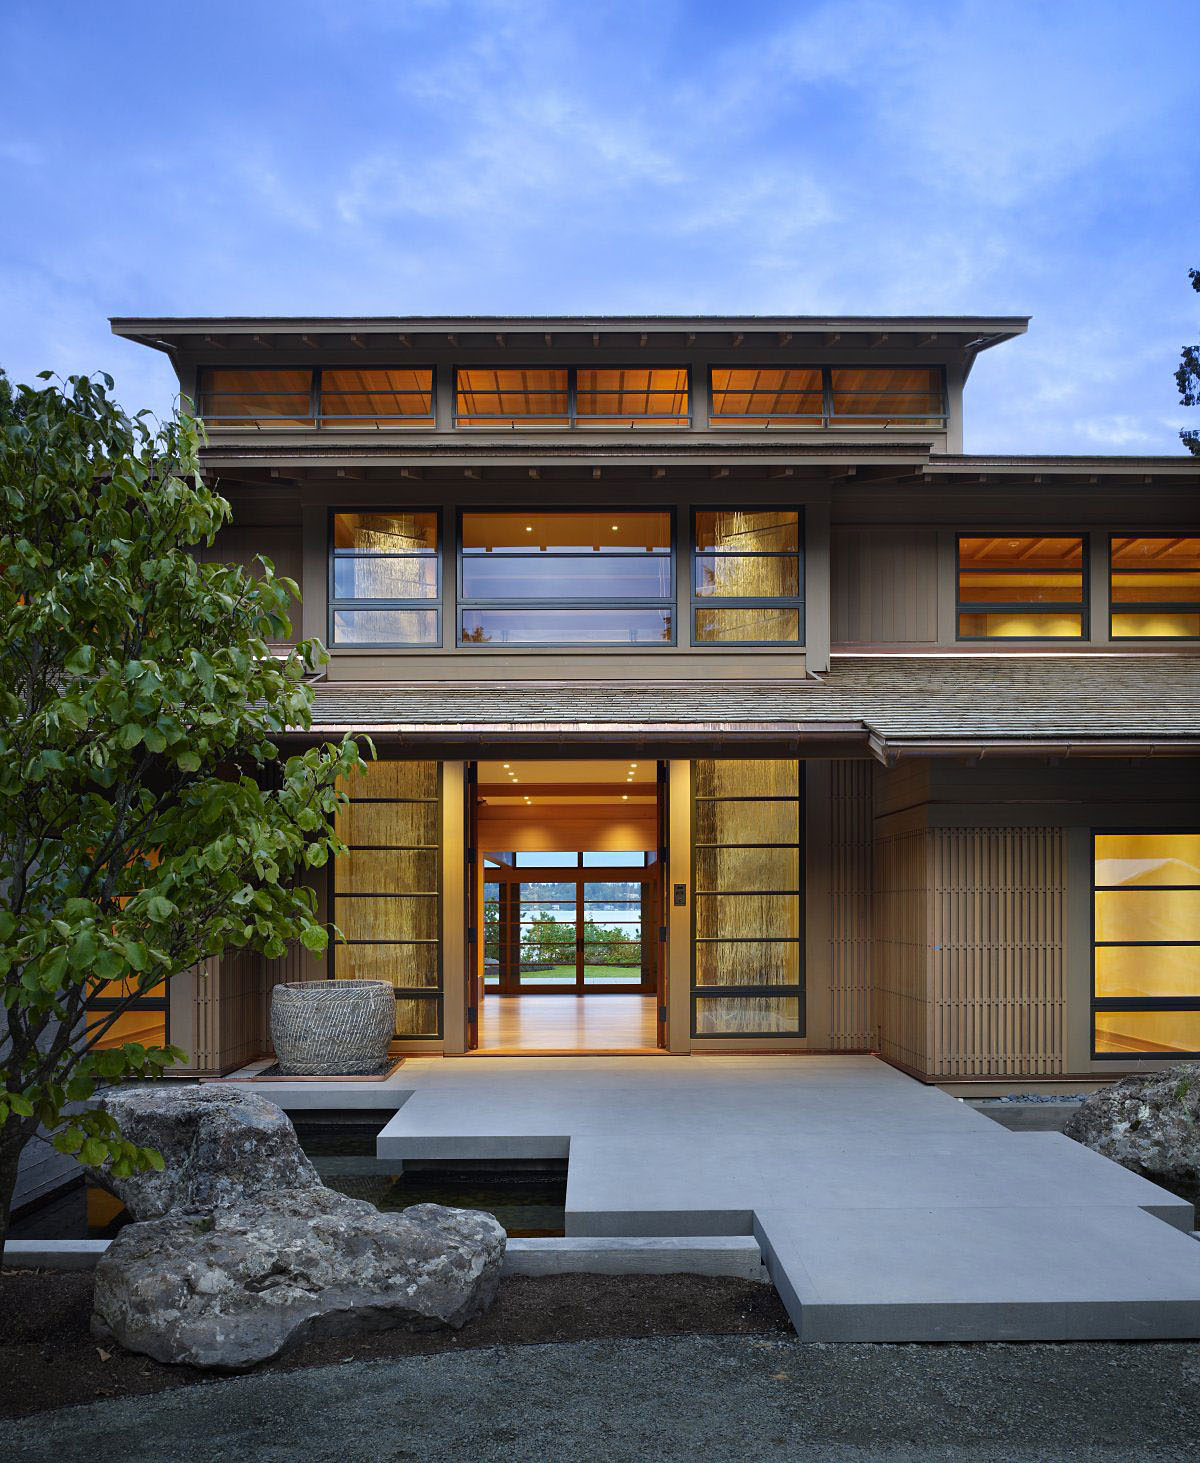 Contemporary house in seattle with japanese influence for Japanese house design